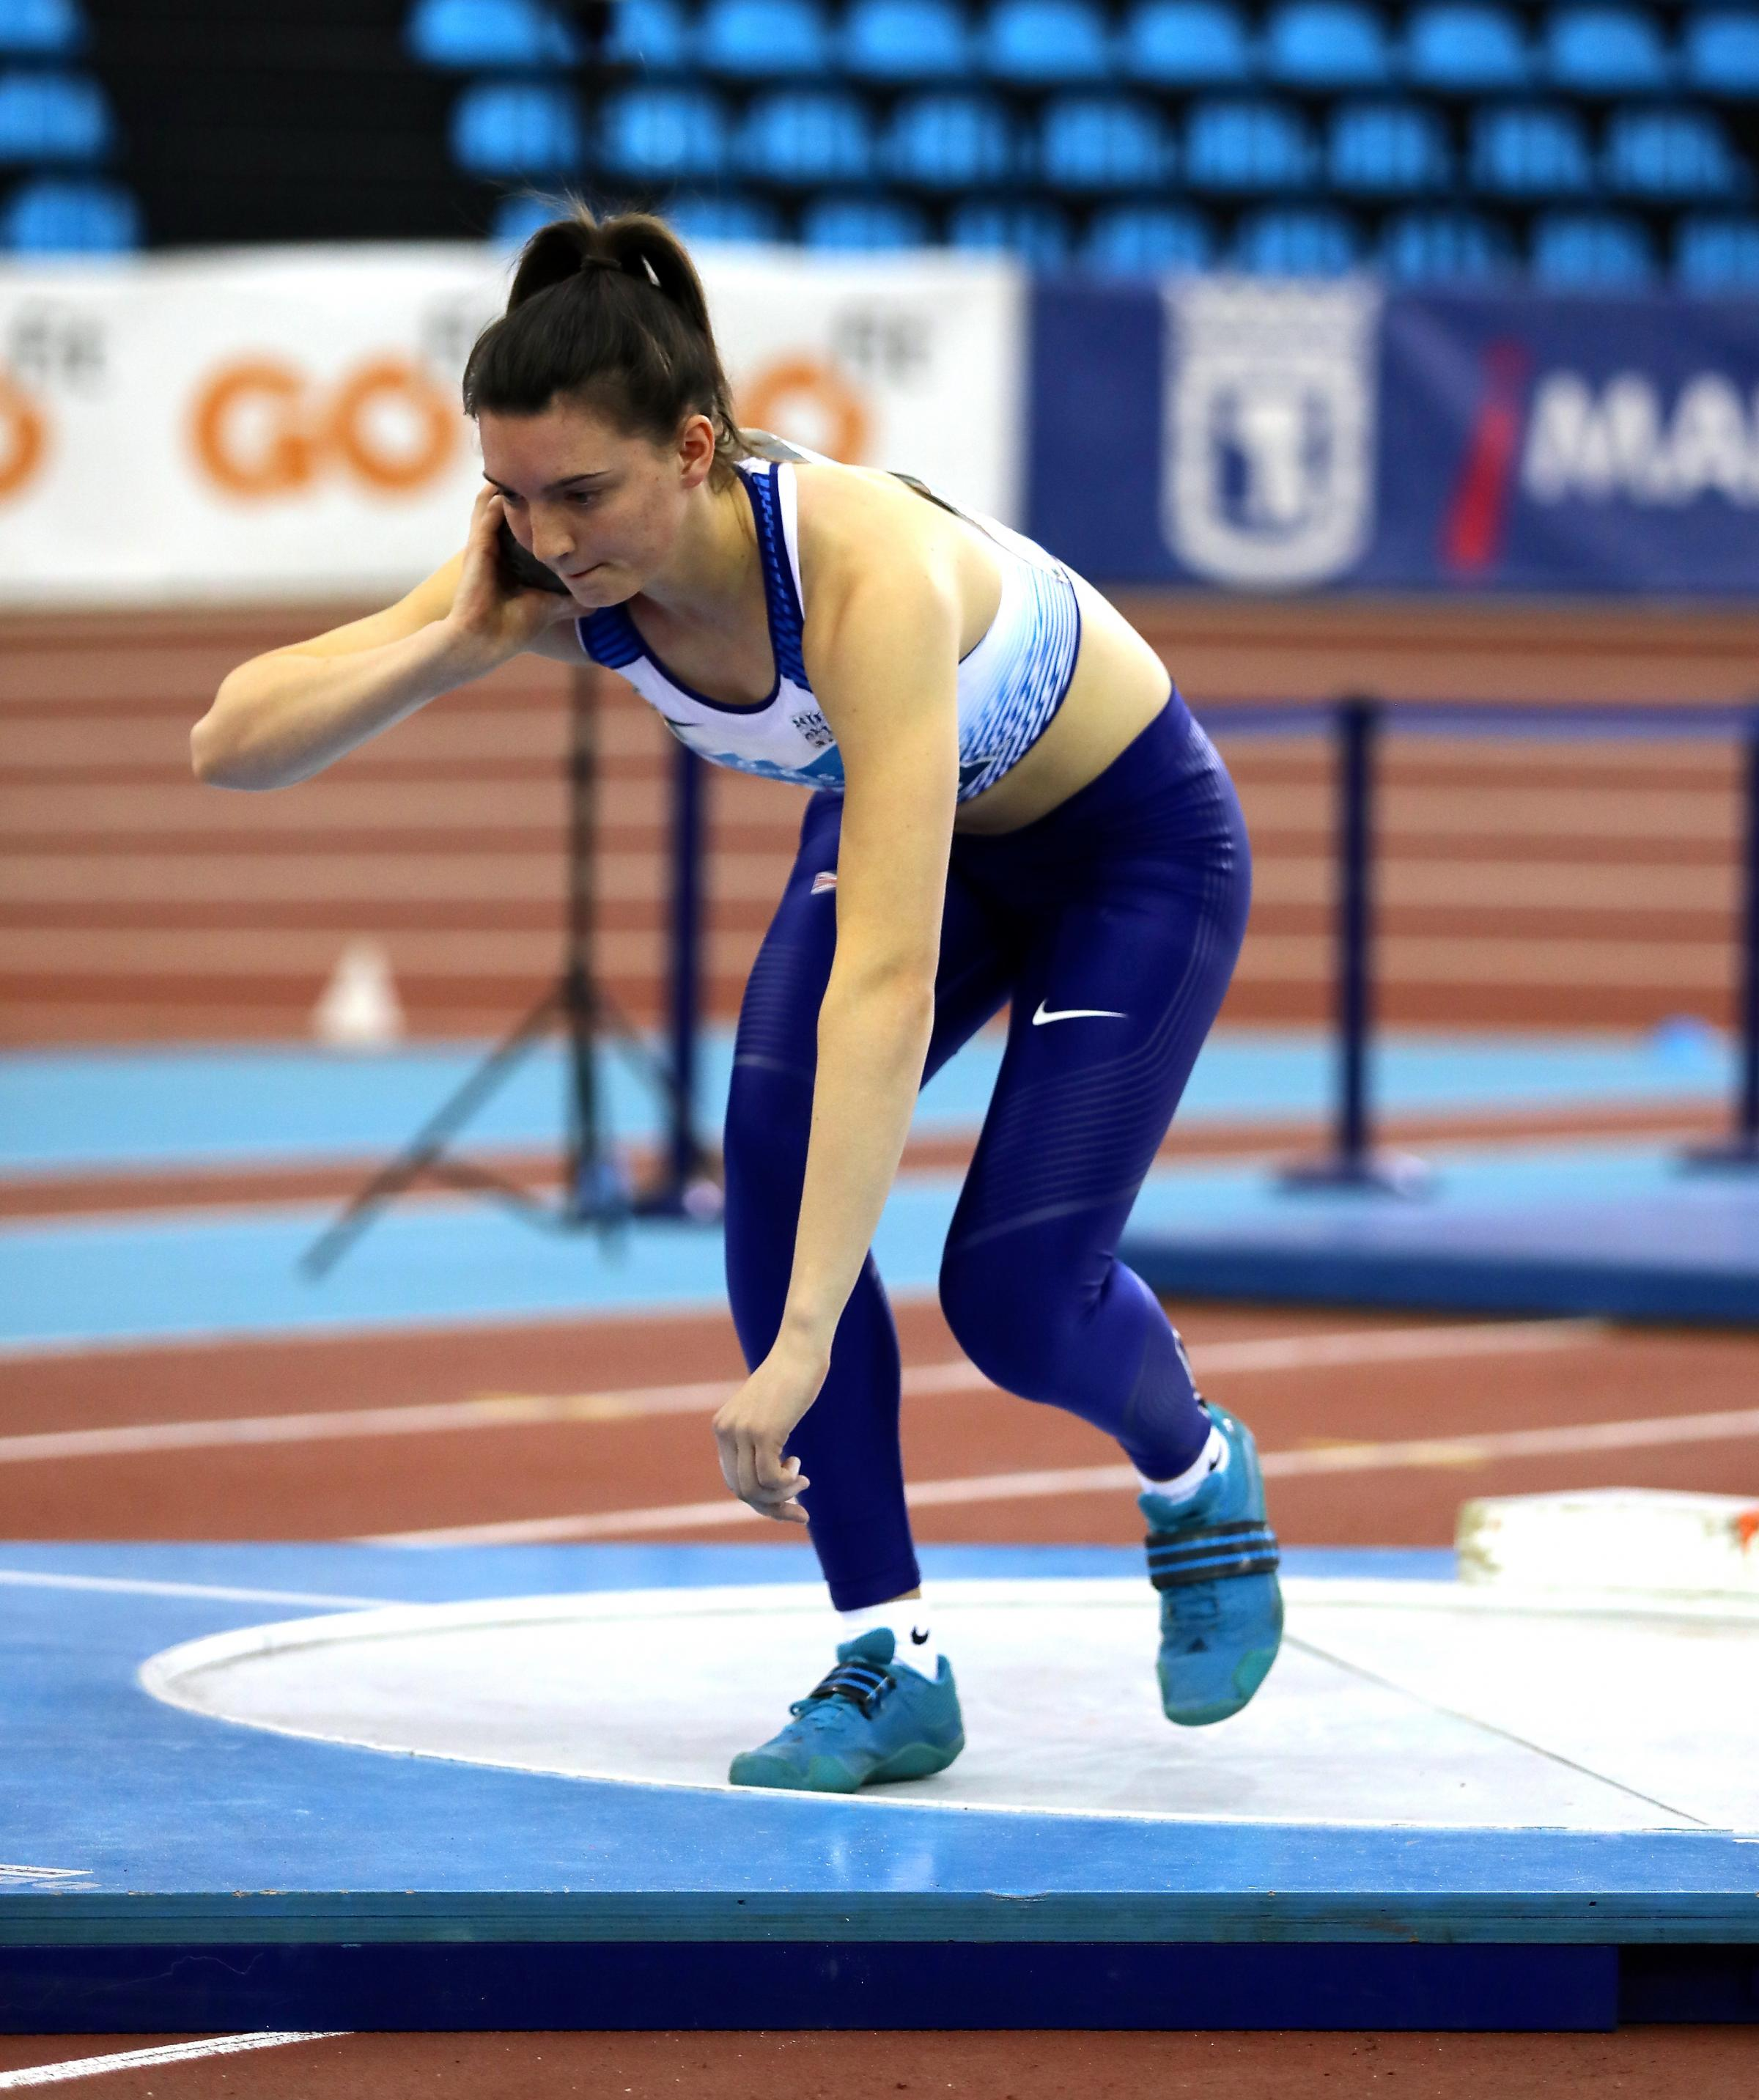 AIMING HIGH: Oxford City AC's Jade O'Dowda, pictured competing for Great Britain in Madrid earlier this year, is bidding to qualify for the IAAF World U20 Championships